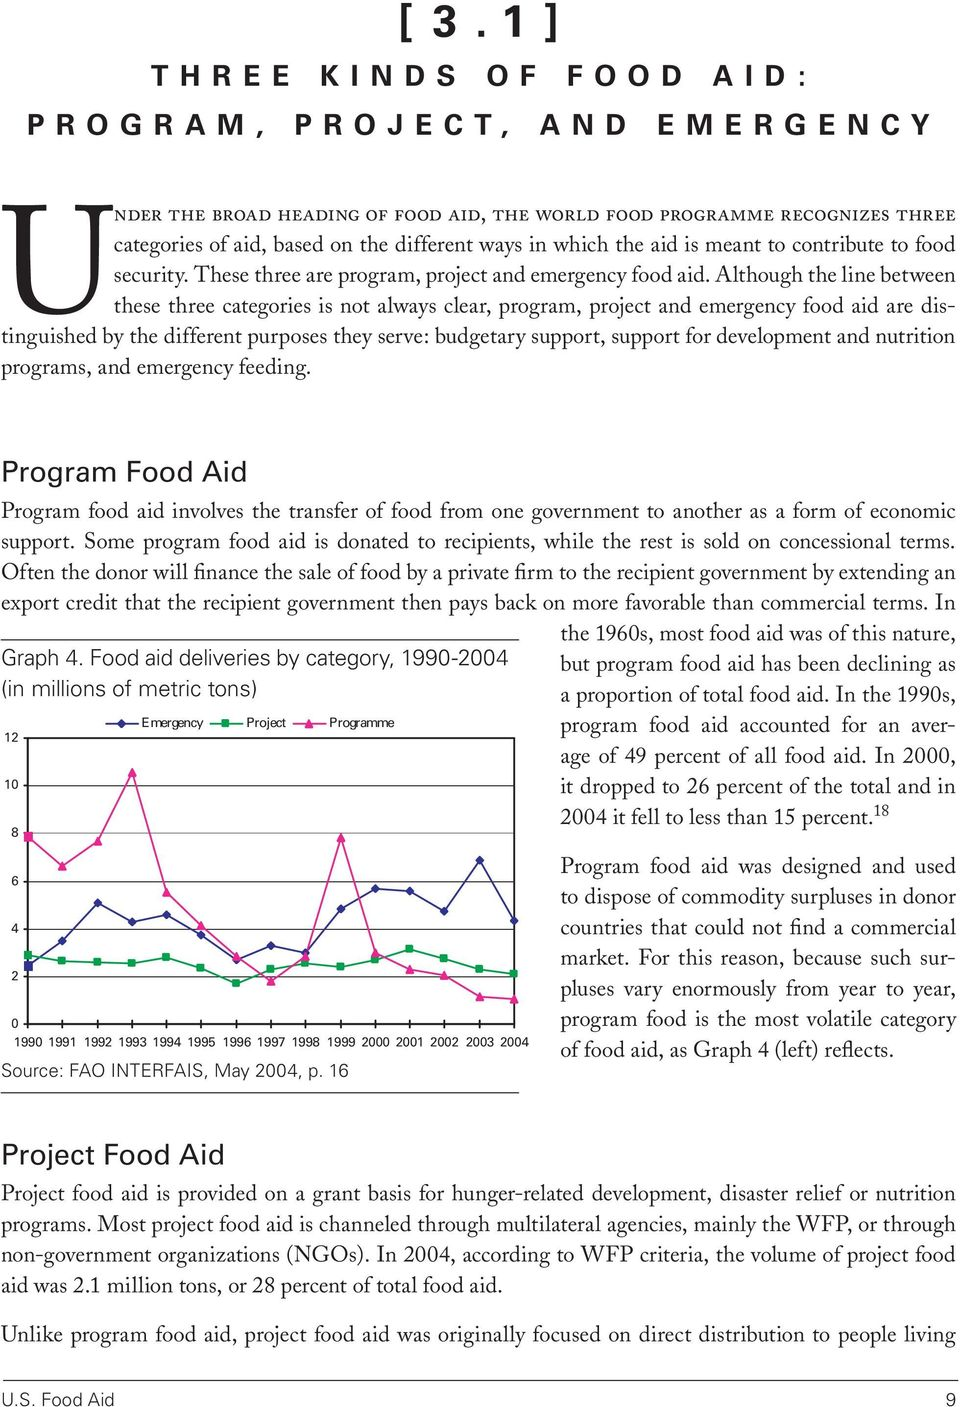 Although the line between these three categories is not always clear, program, project and emergency food aid are distinguished by the different purposes they serve: budgetary support, support for